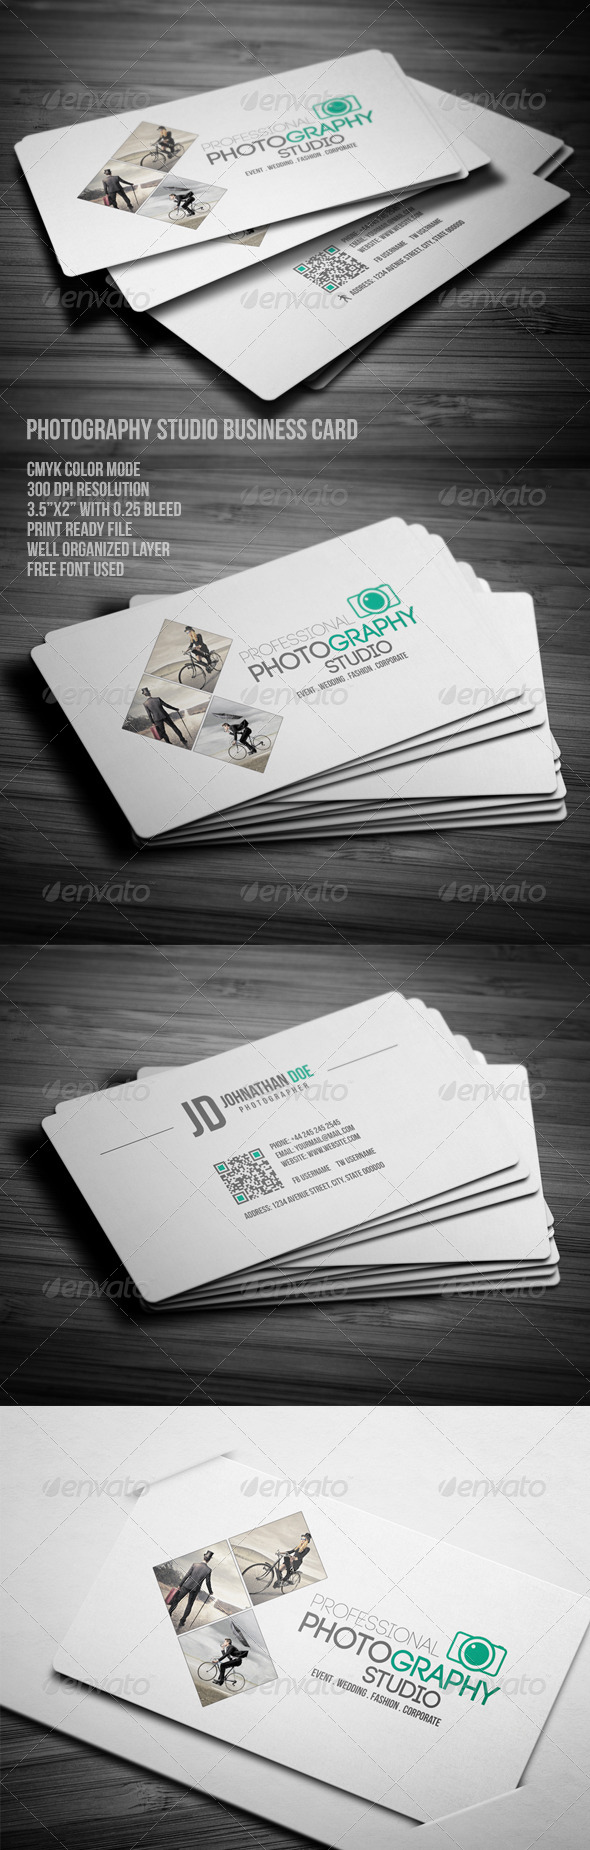 Photography studio business card photoshop psd professional photography studio business card photoshop psd professional minimal available here https reheart Image collections